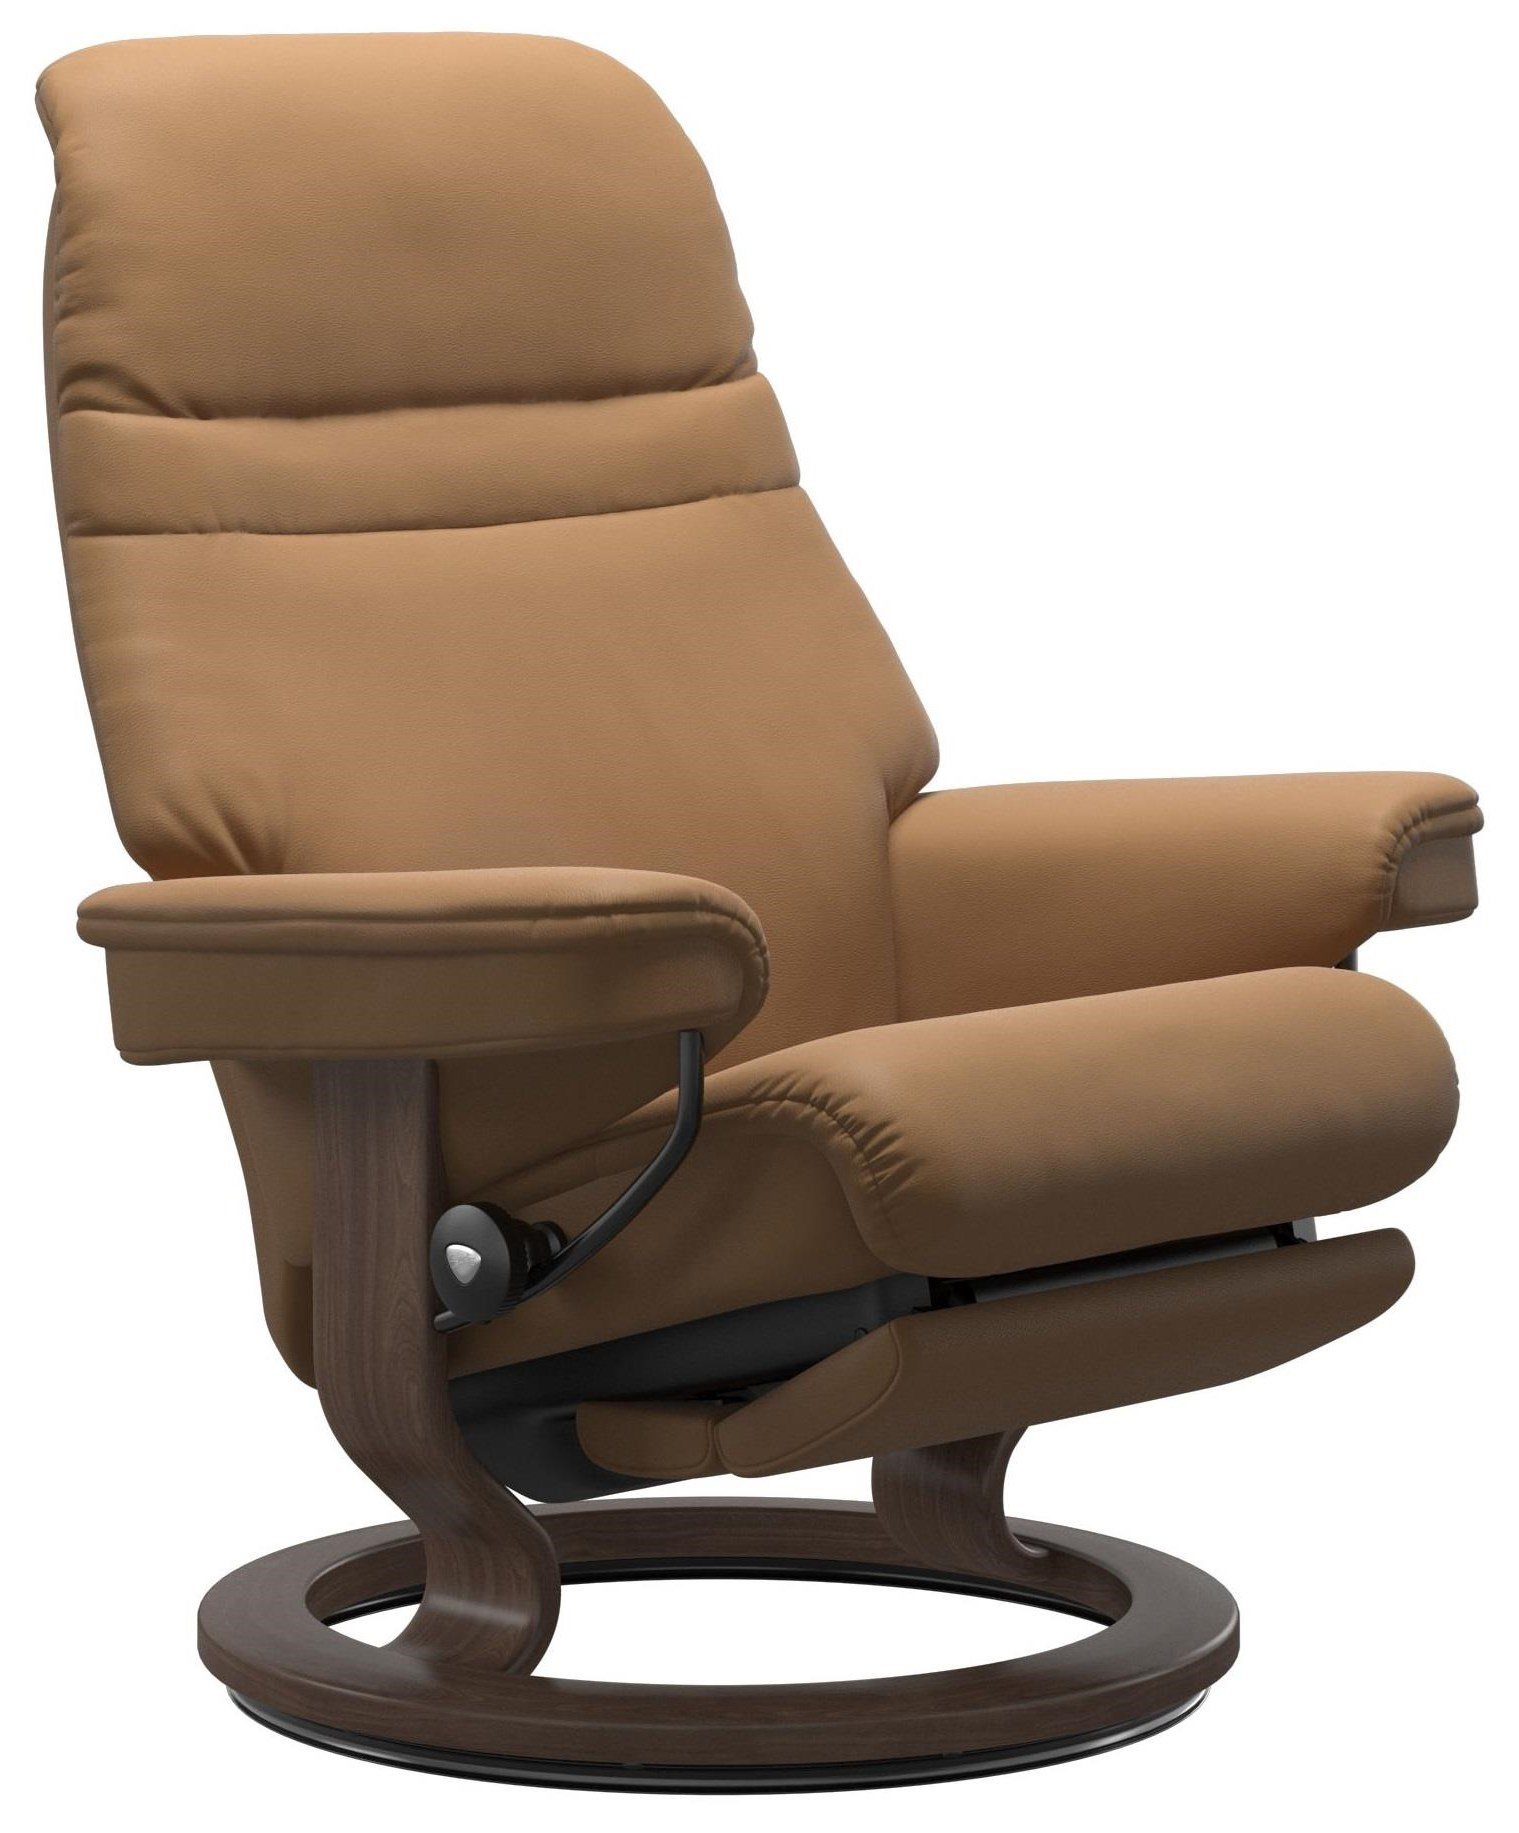 Sunrise Large Classic Power Recliner by Stressless at Bennett's Furniture and Mattresses